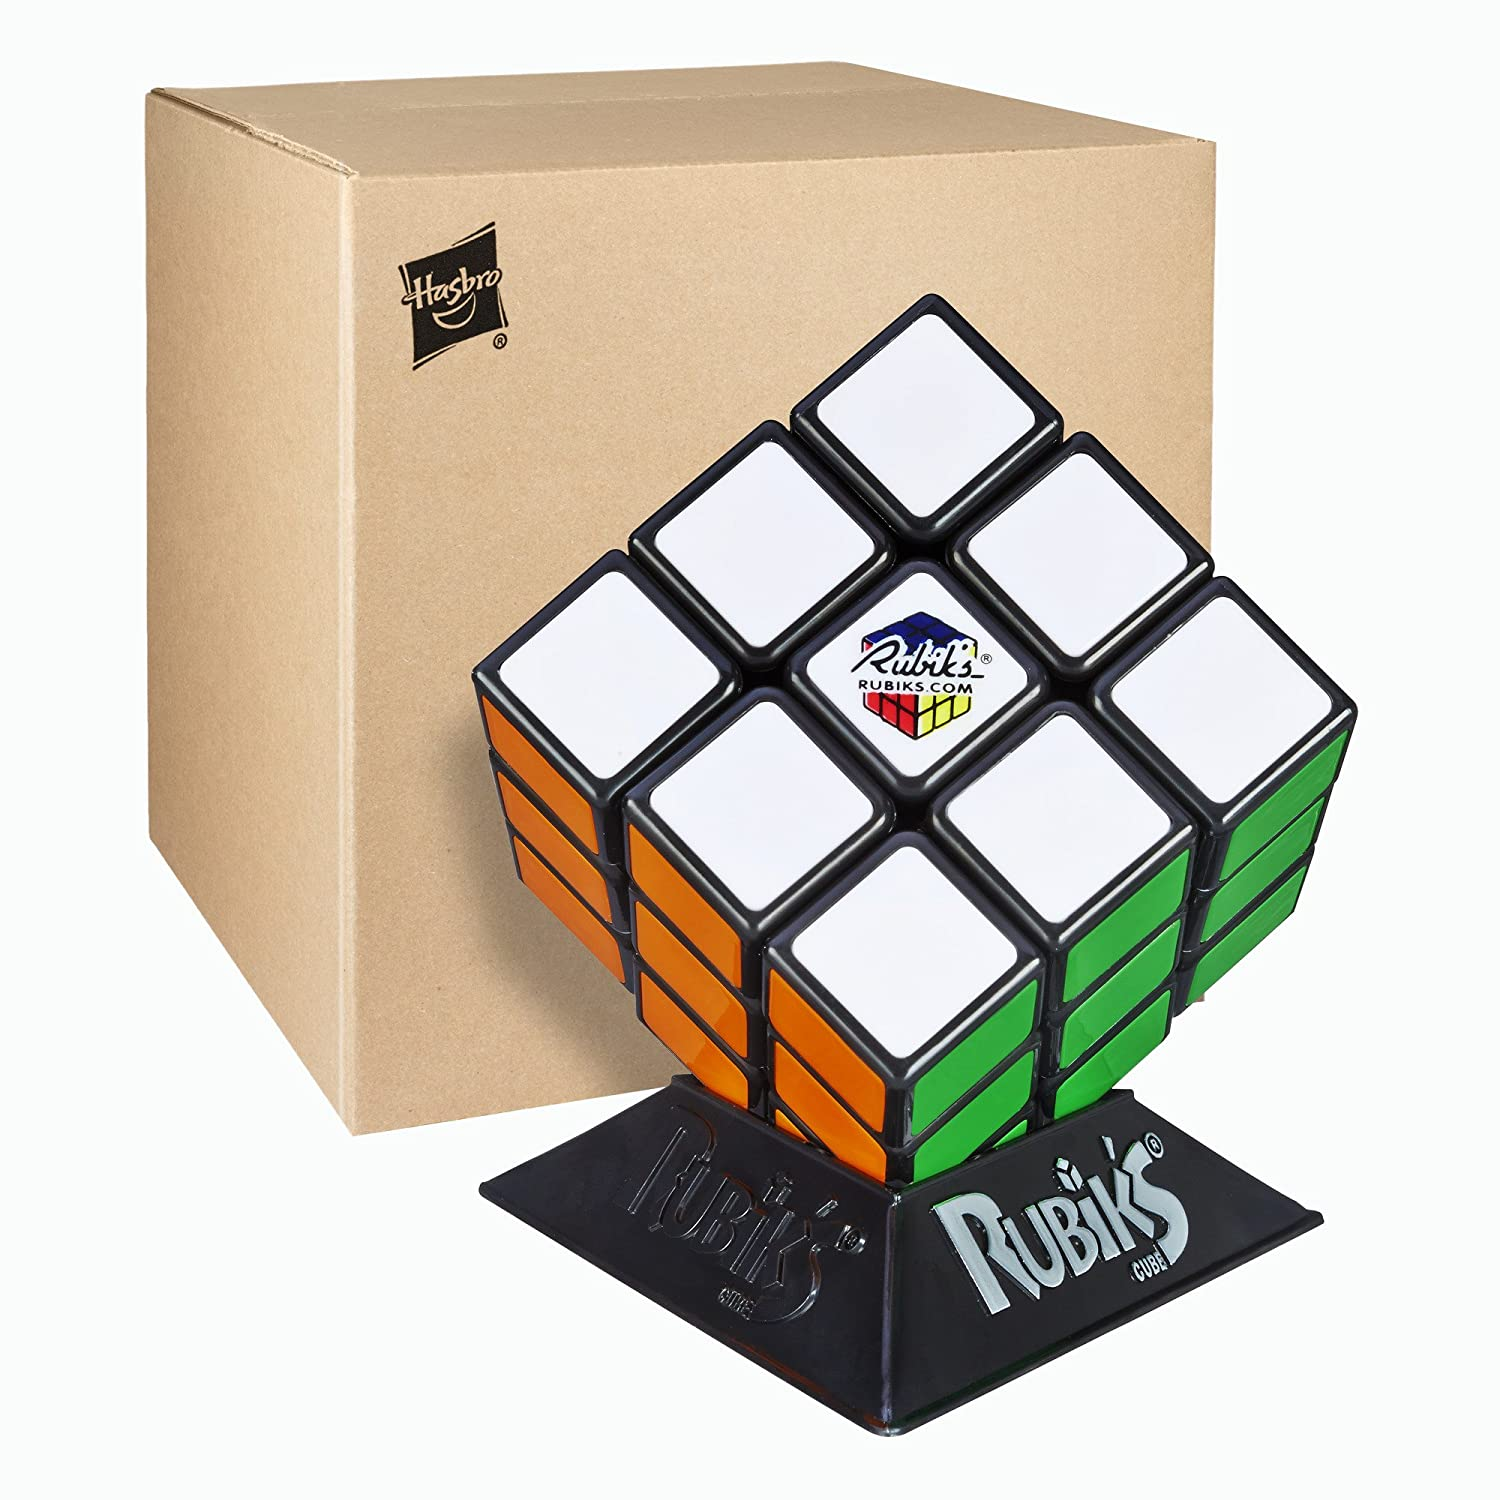 Buy hasbro rubiks cube game multicolour online at low prices in india amazon in